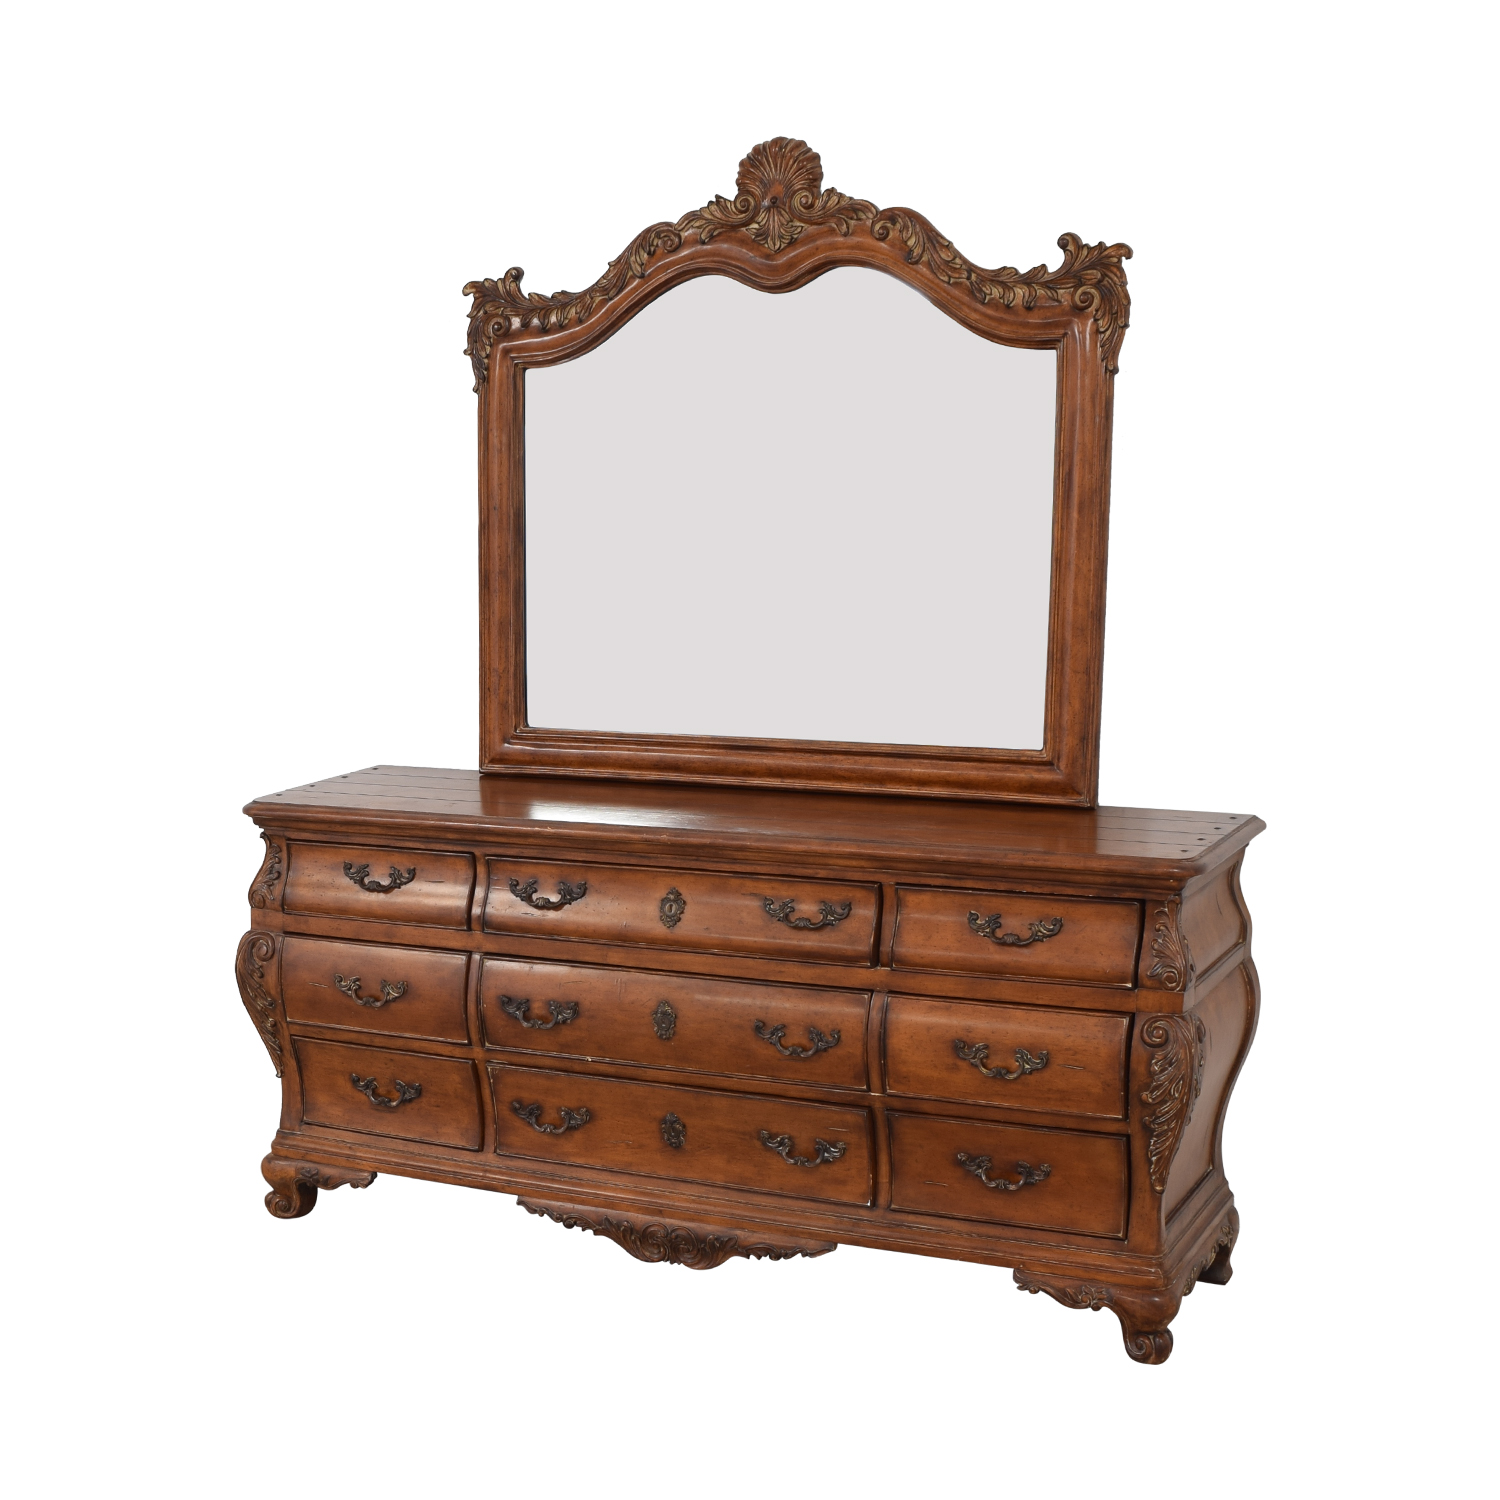 Thomasville Thomasville Chateau Provence Bombe Dresser and Landscape Mirror used